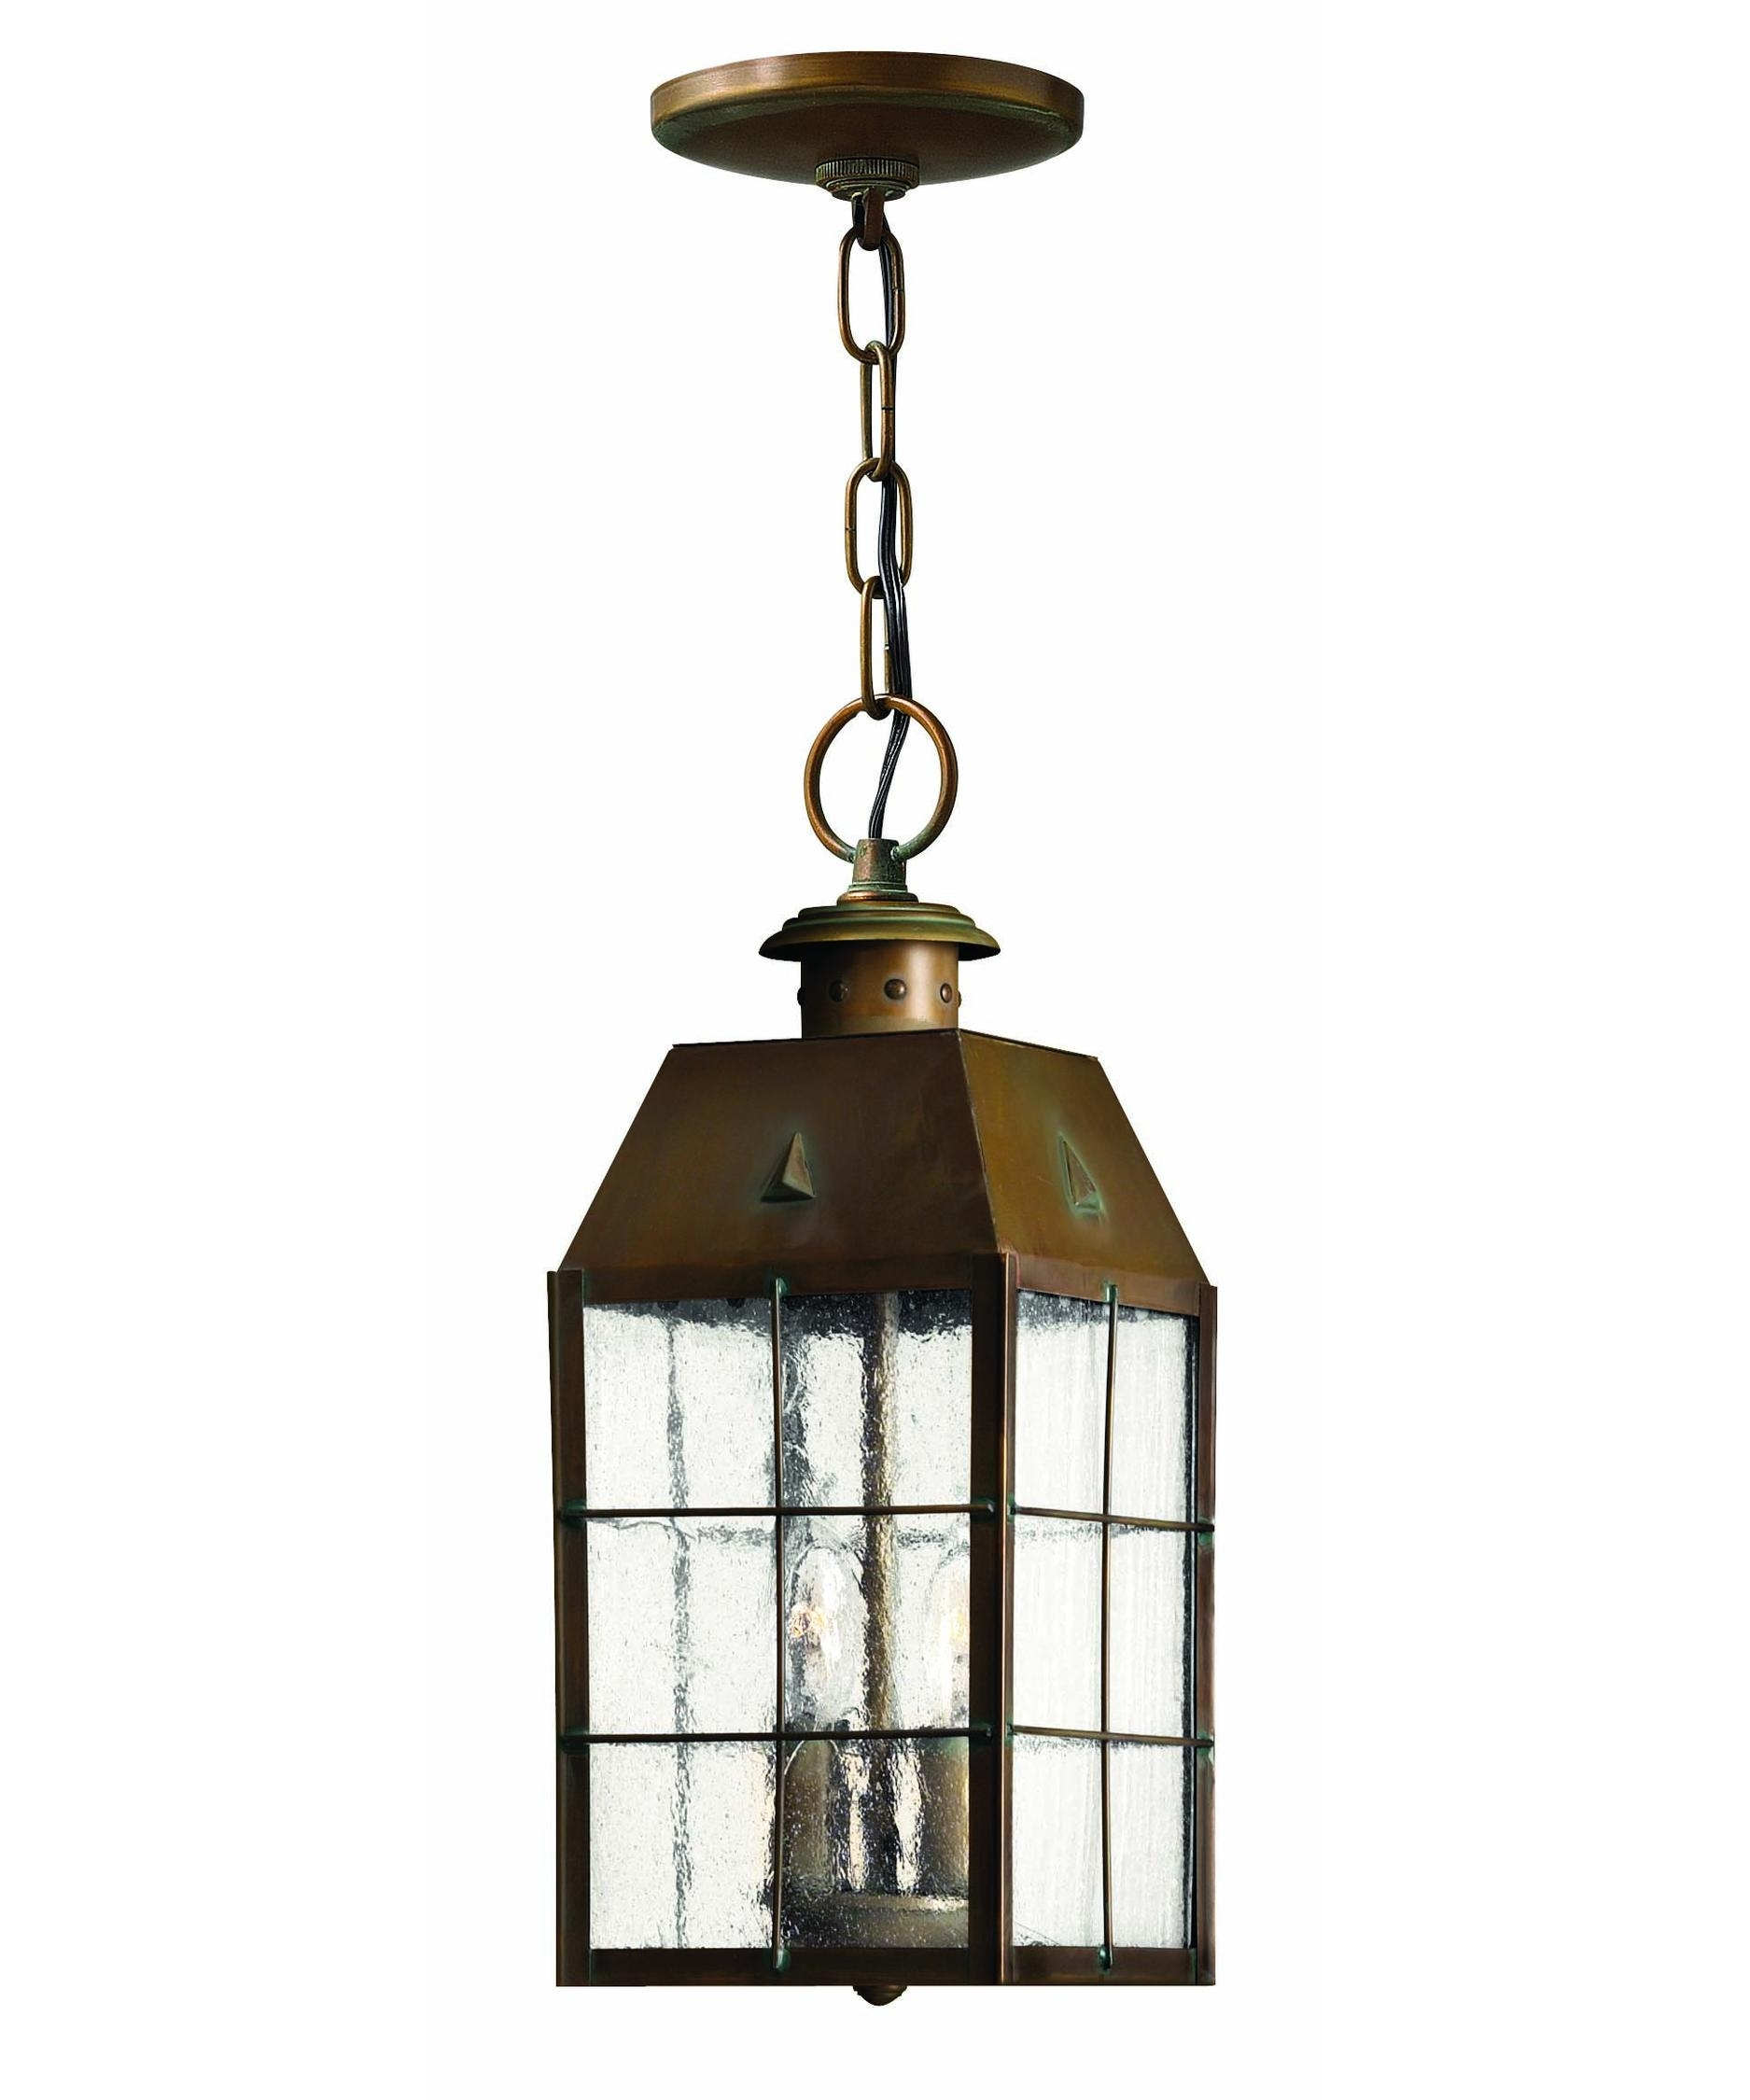 Hinkley Lighting 2372 Nantucket 6 Inch Wide 2 Light Outdoor Hanging Throughout Outdoor Hanging Glass Lights (View 12 of 15)